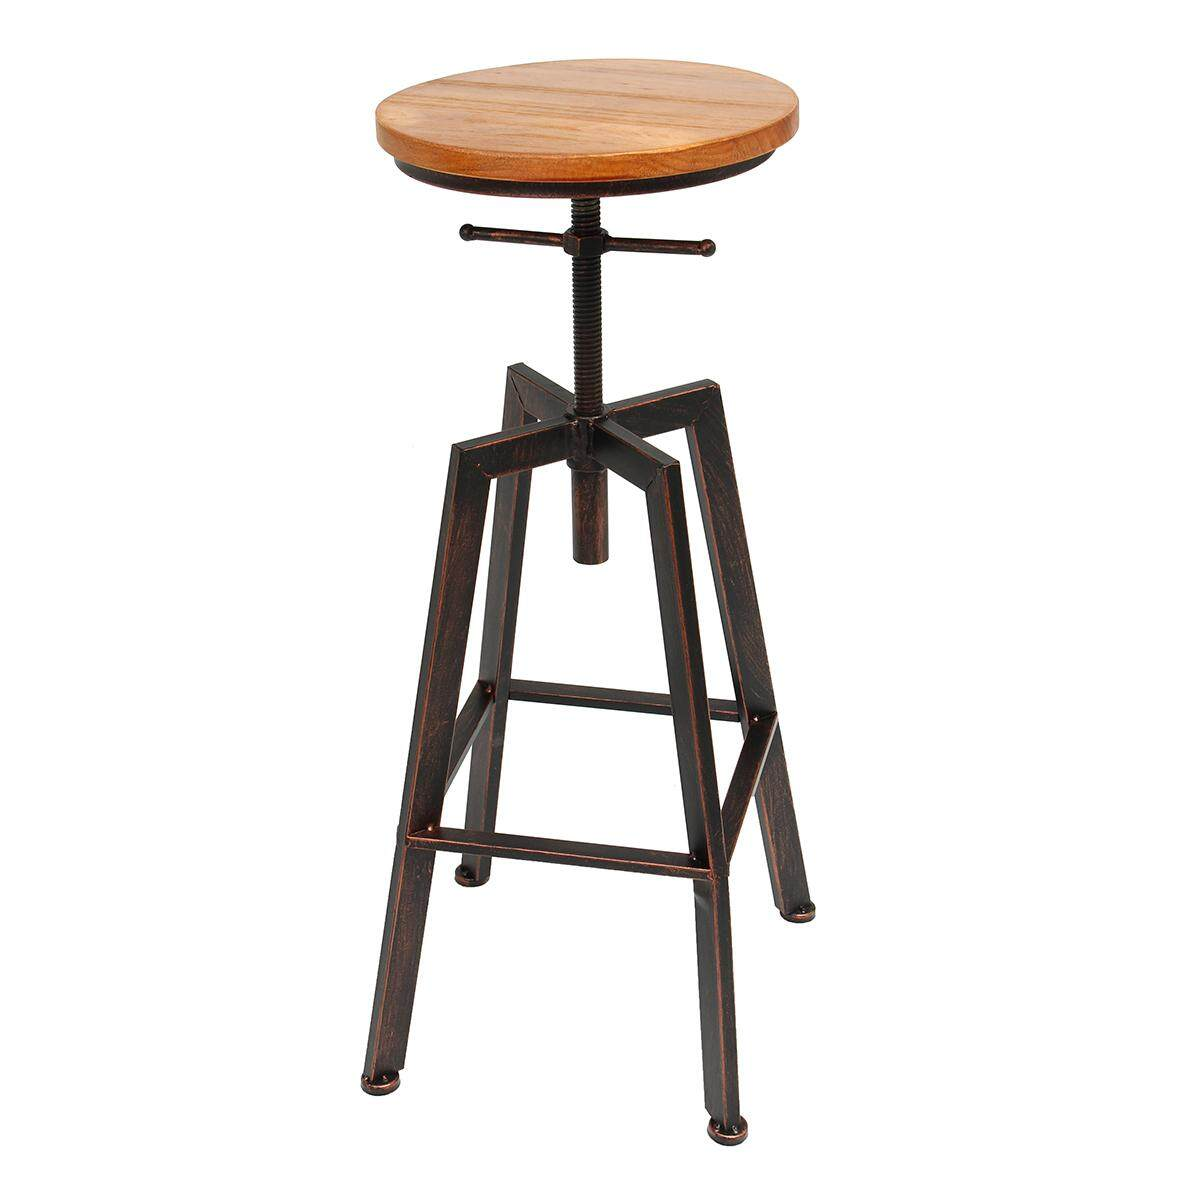 iron bar chairs solid wood bar stool retro industrial design rotating lift high chair dining black - intl